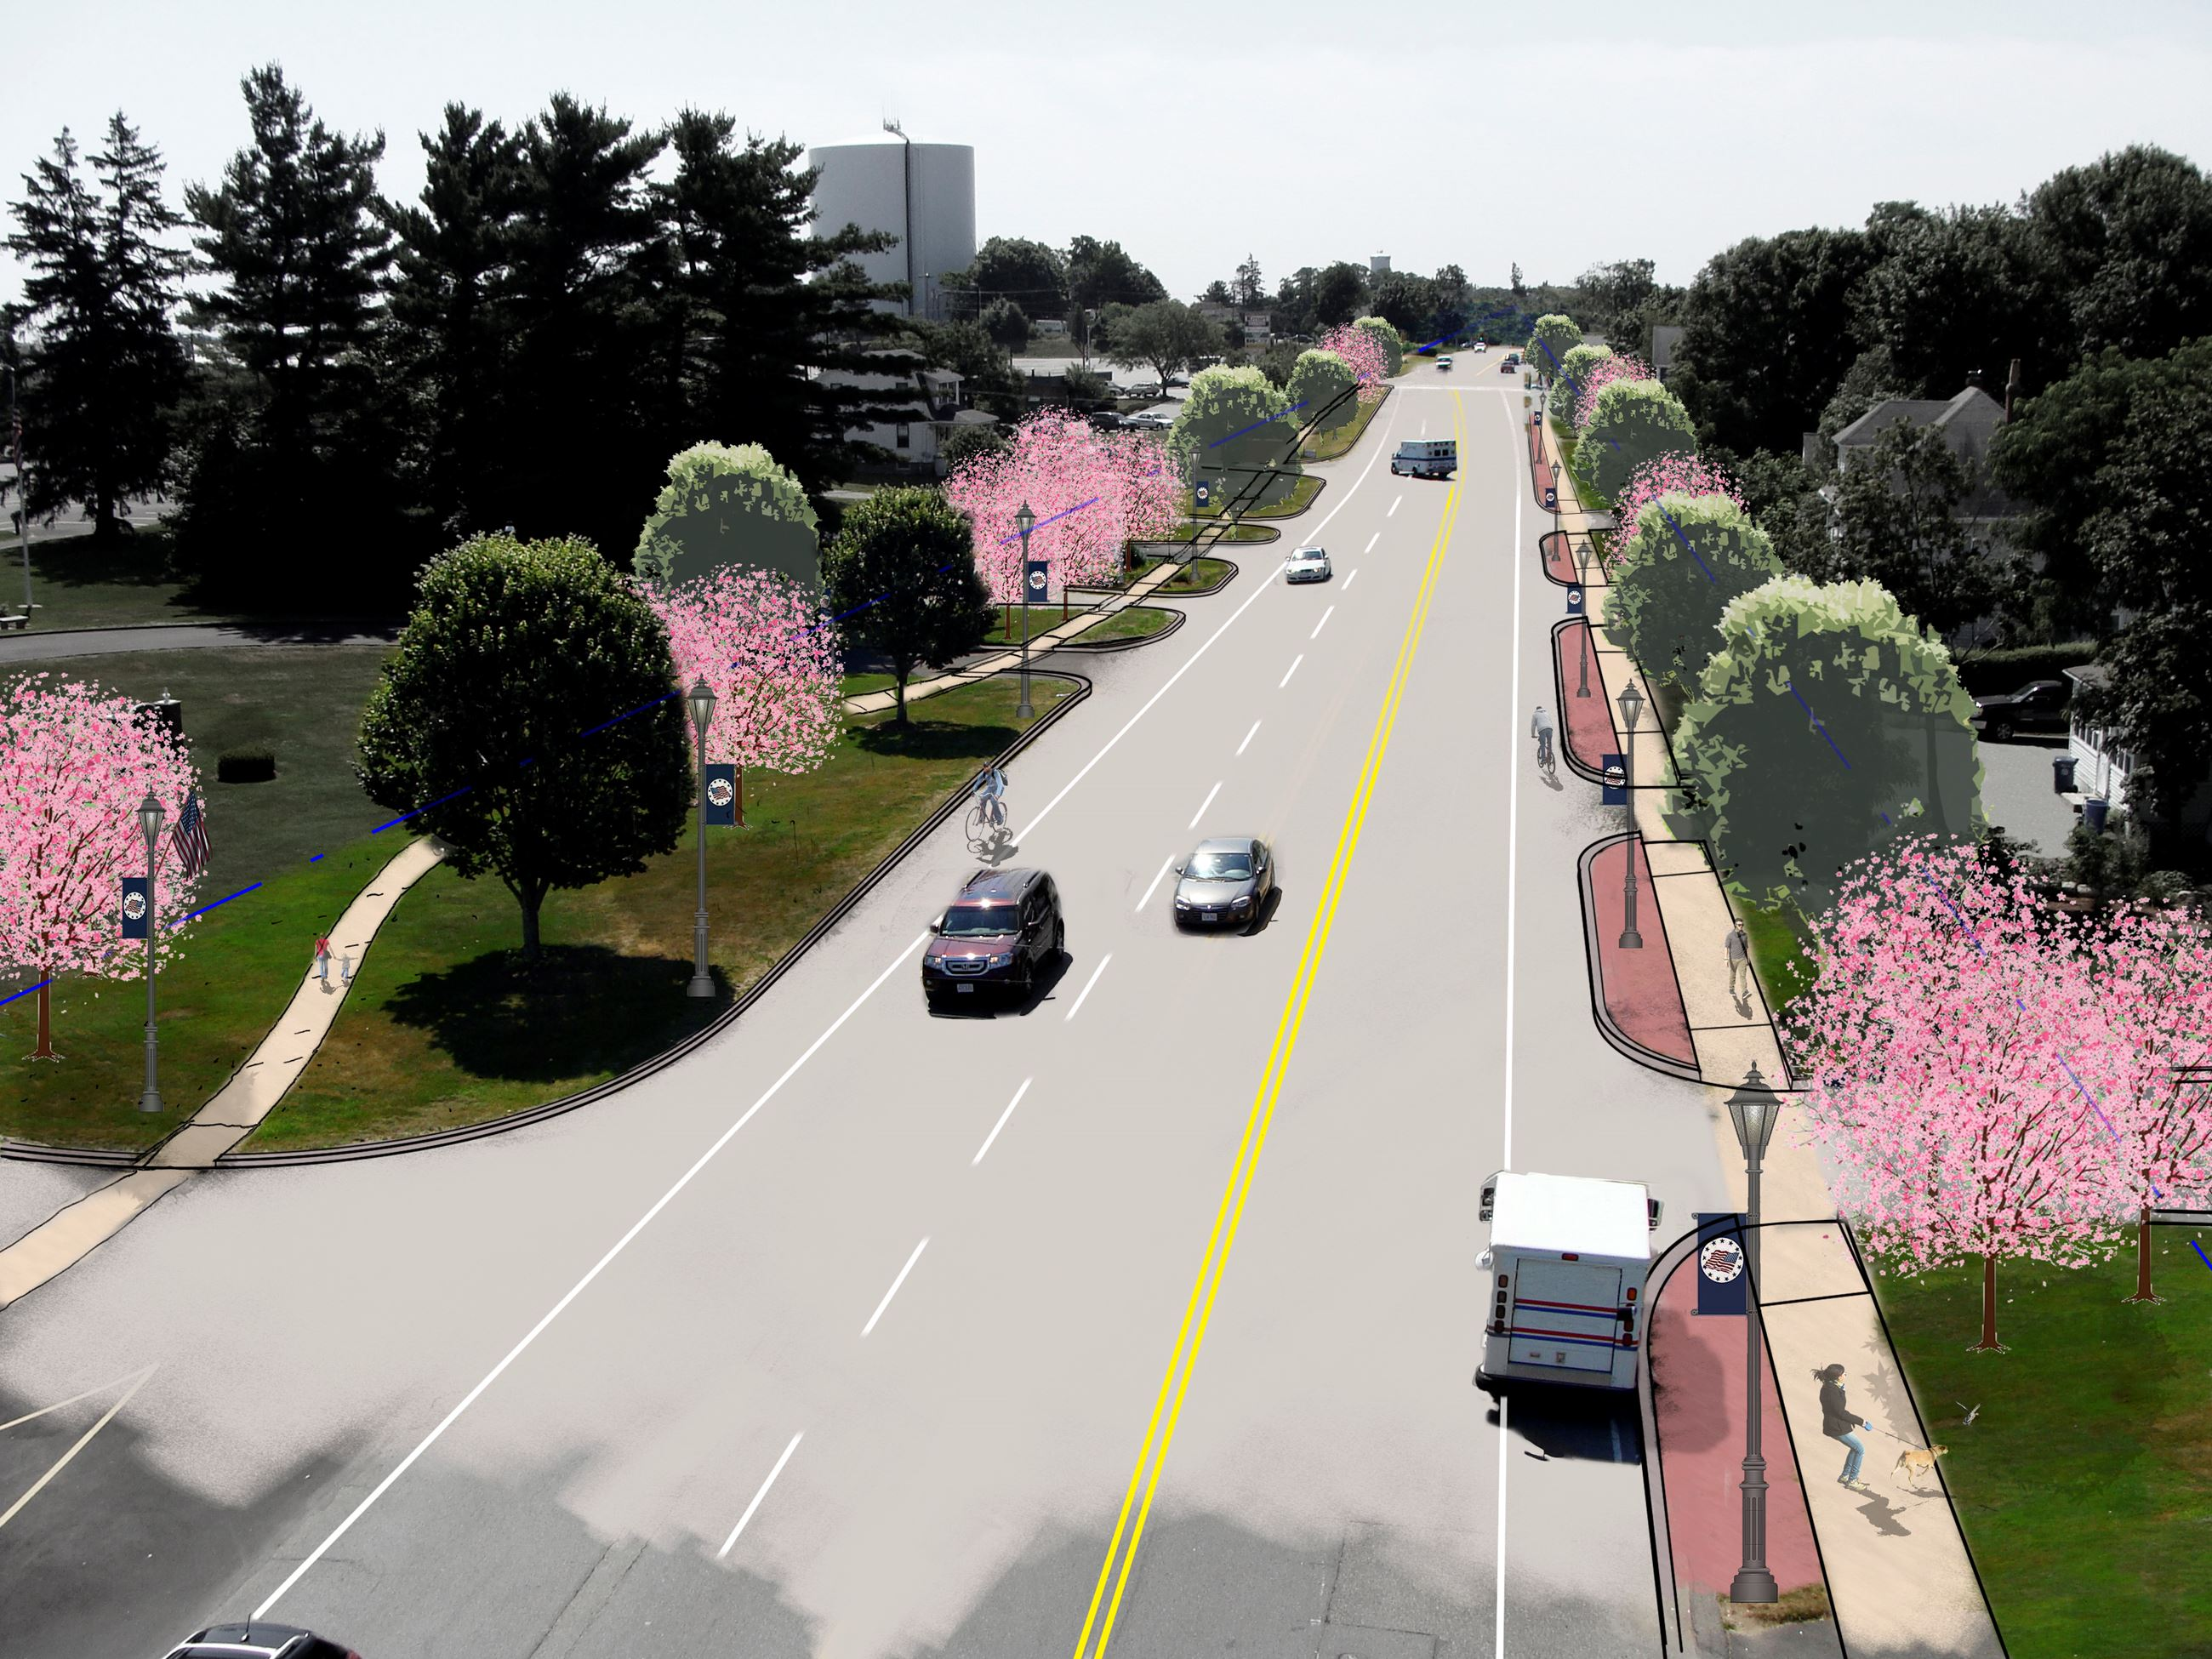 Boston Road South Rendering